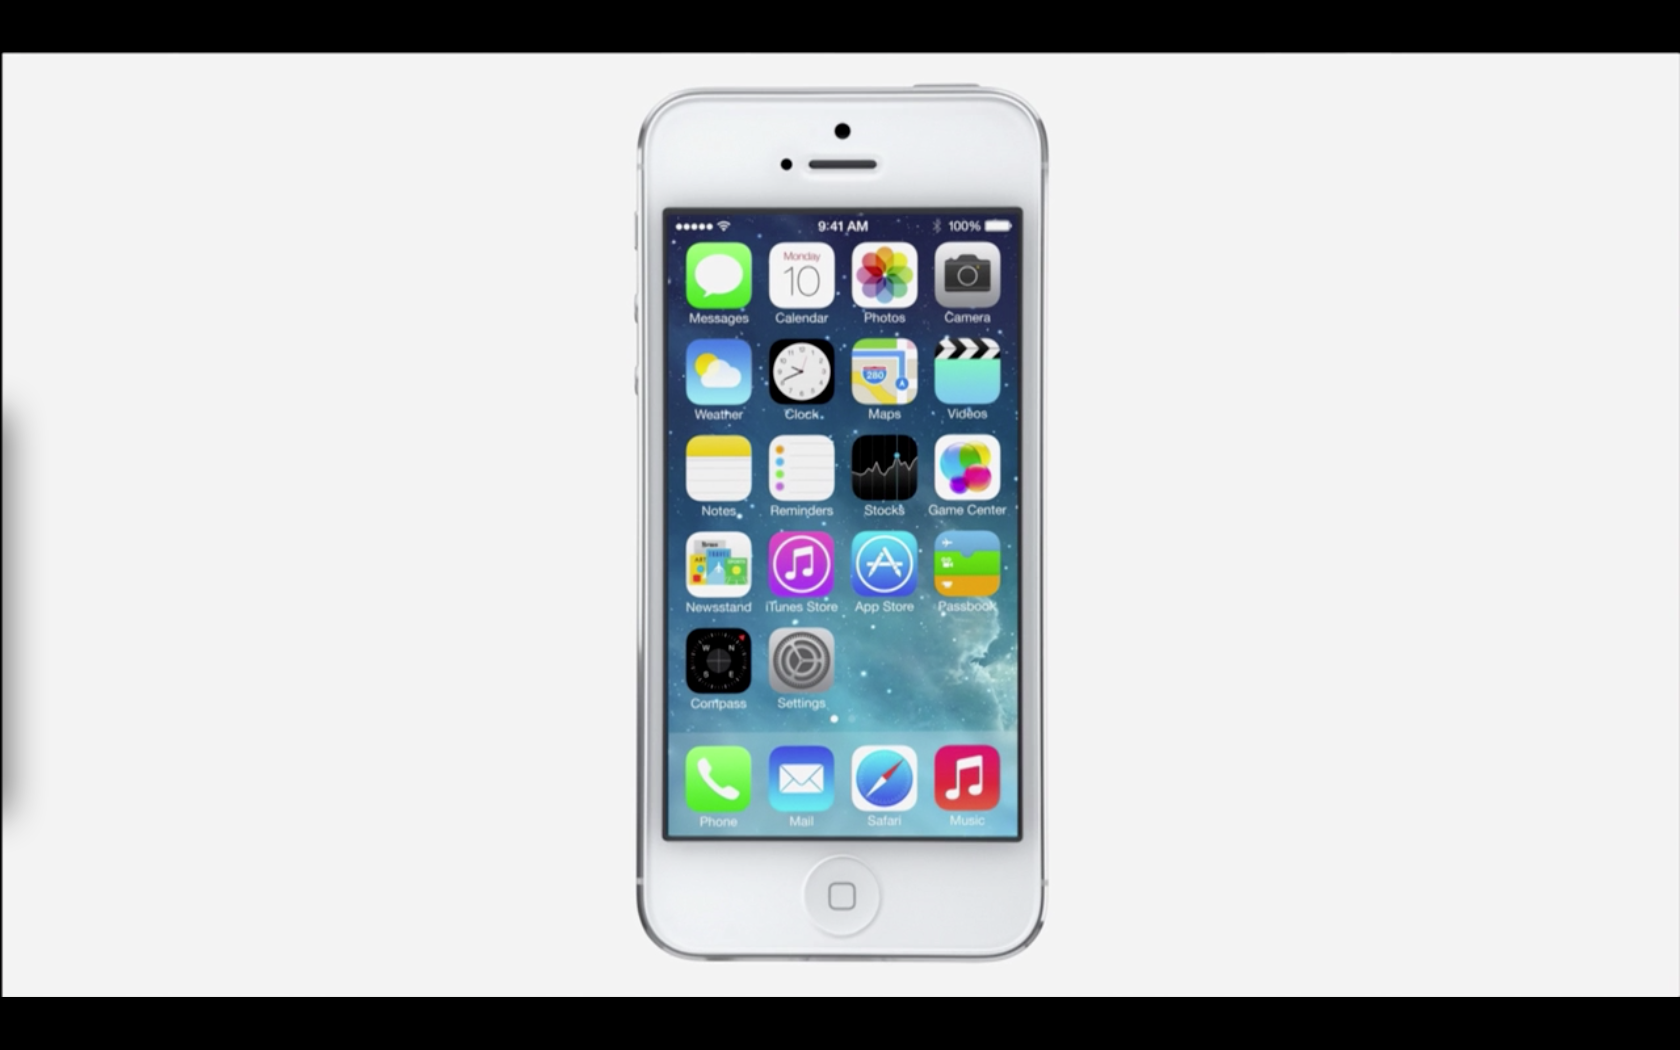 """How major is iOS 7? """"It's the biggest change to iOS since the introduction of the iPhone,"""" Apple CEO Tim Cook noted at WWDC 2013. Apple unveiled the latest mobile operating system on Monday, iOS 7, a project spearheaded by the legendary Jony Ive, the company's senior VP of design who believes strongly in the """"enduring beauty of simplicity."""""""